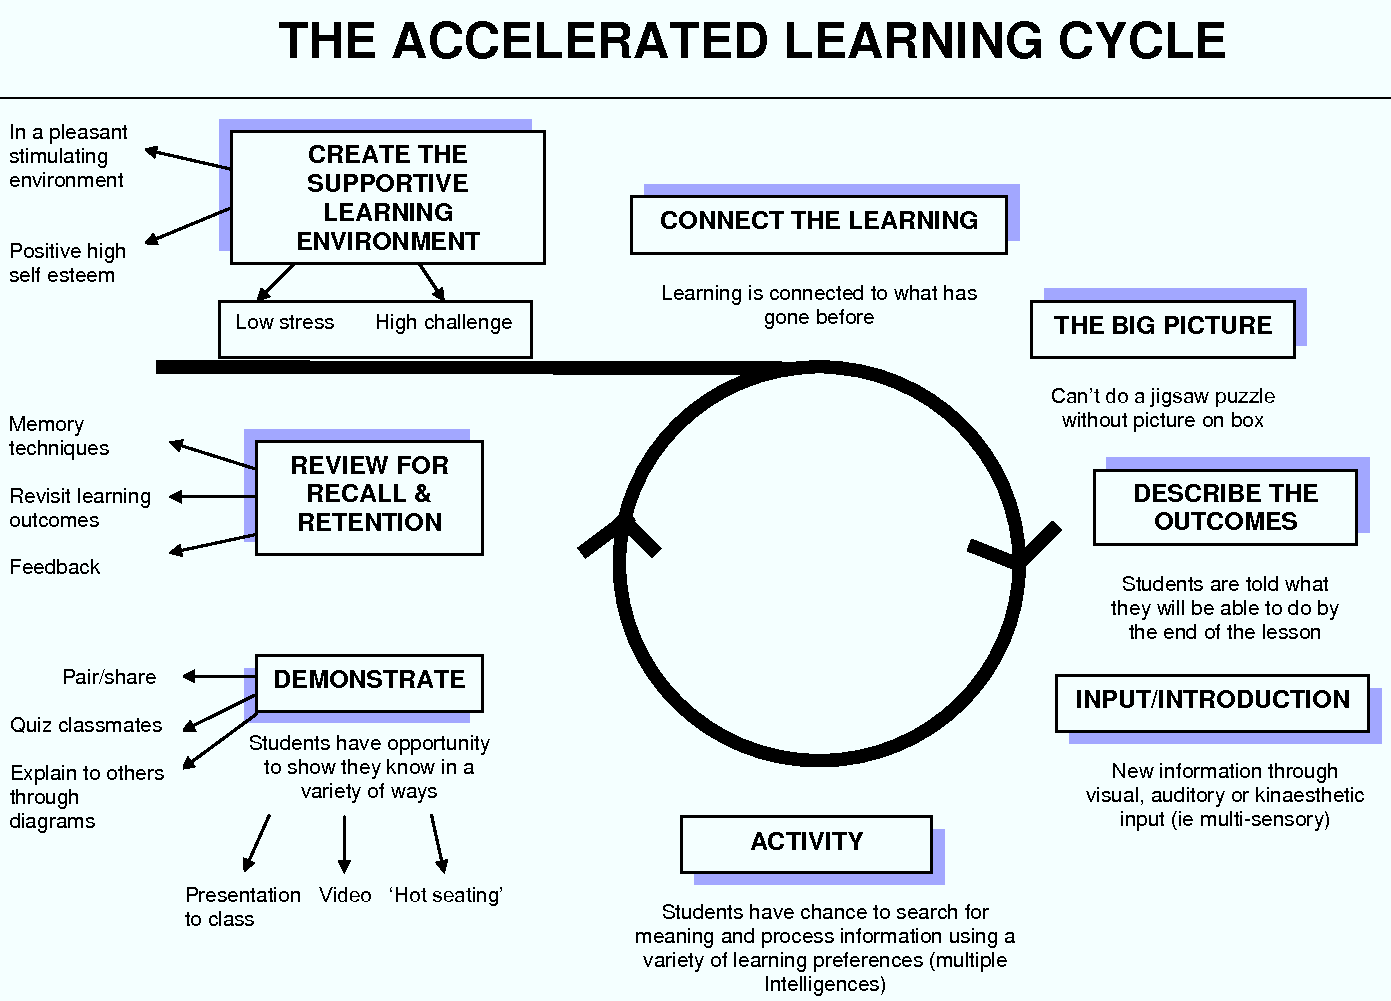 The Accelerated Learning Cycle Learning Pinterest Cycling - Learning cycle lesson plan template